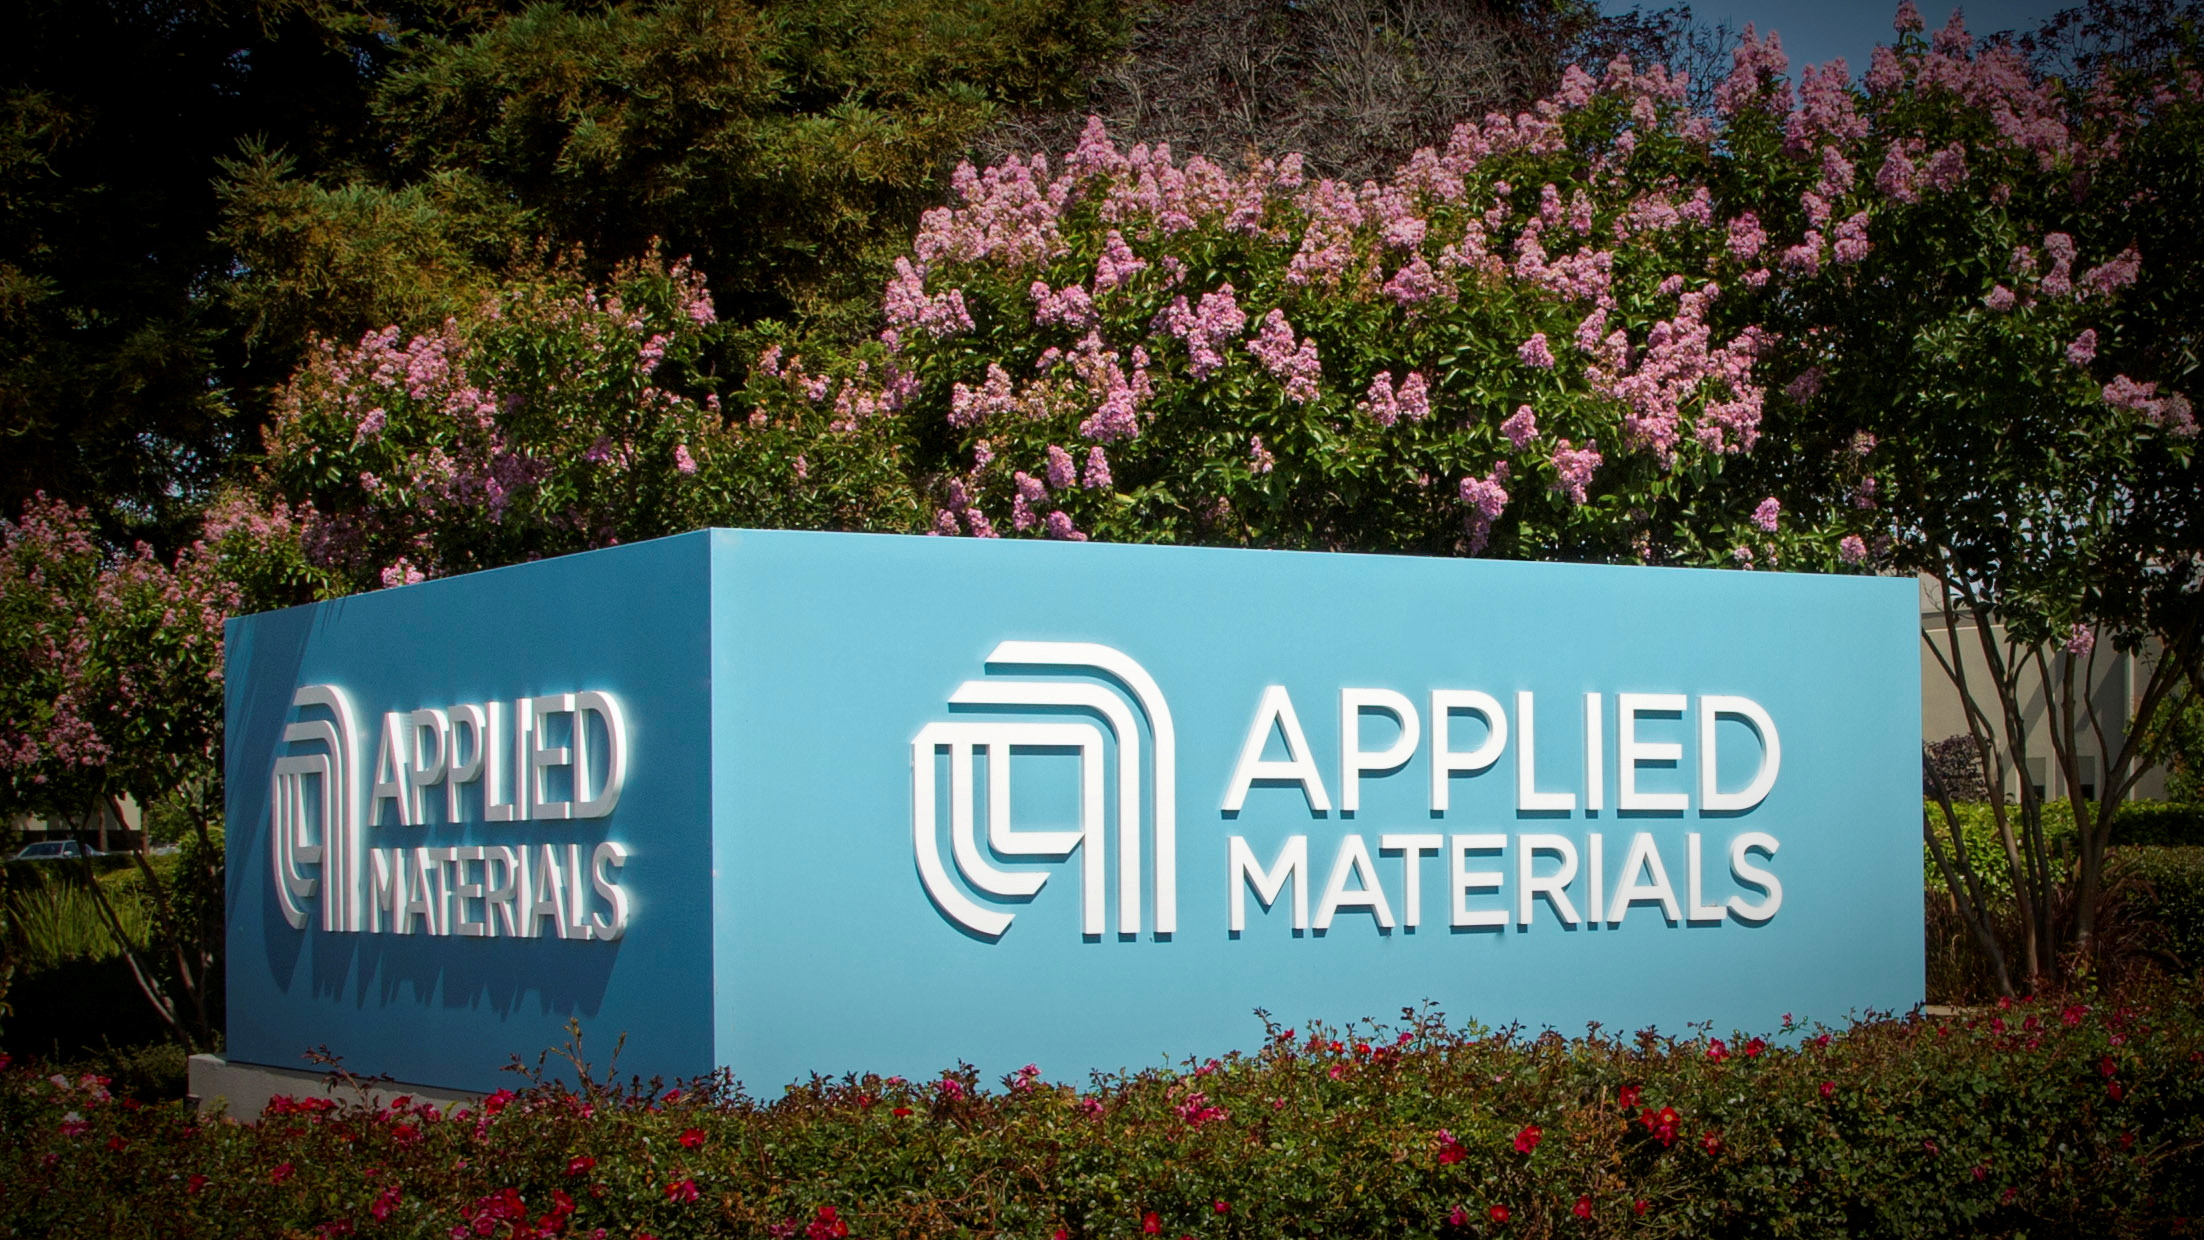 Applied Materials' new corporate signage photo in Santa Clara, California, U.S. is shown in this image released on August 22, 2016.  Courtesy Applied Materials/Handout via REUTERS